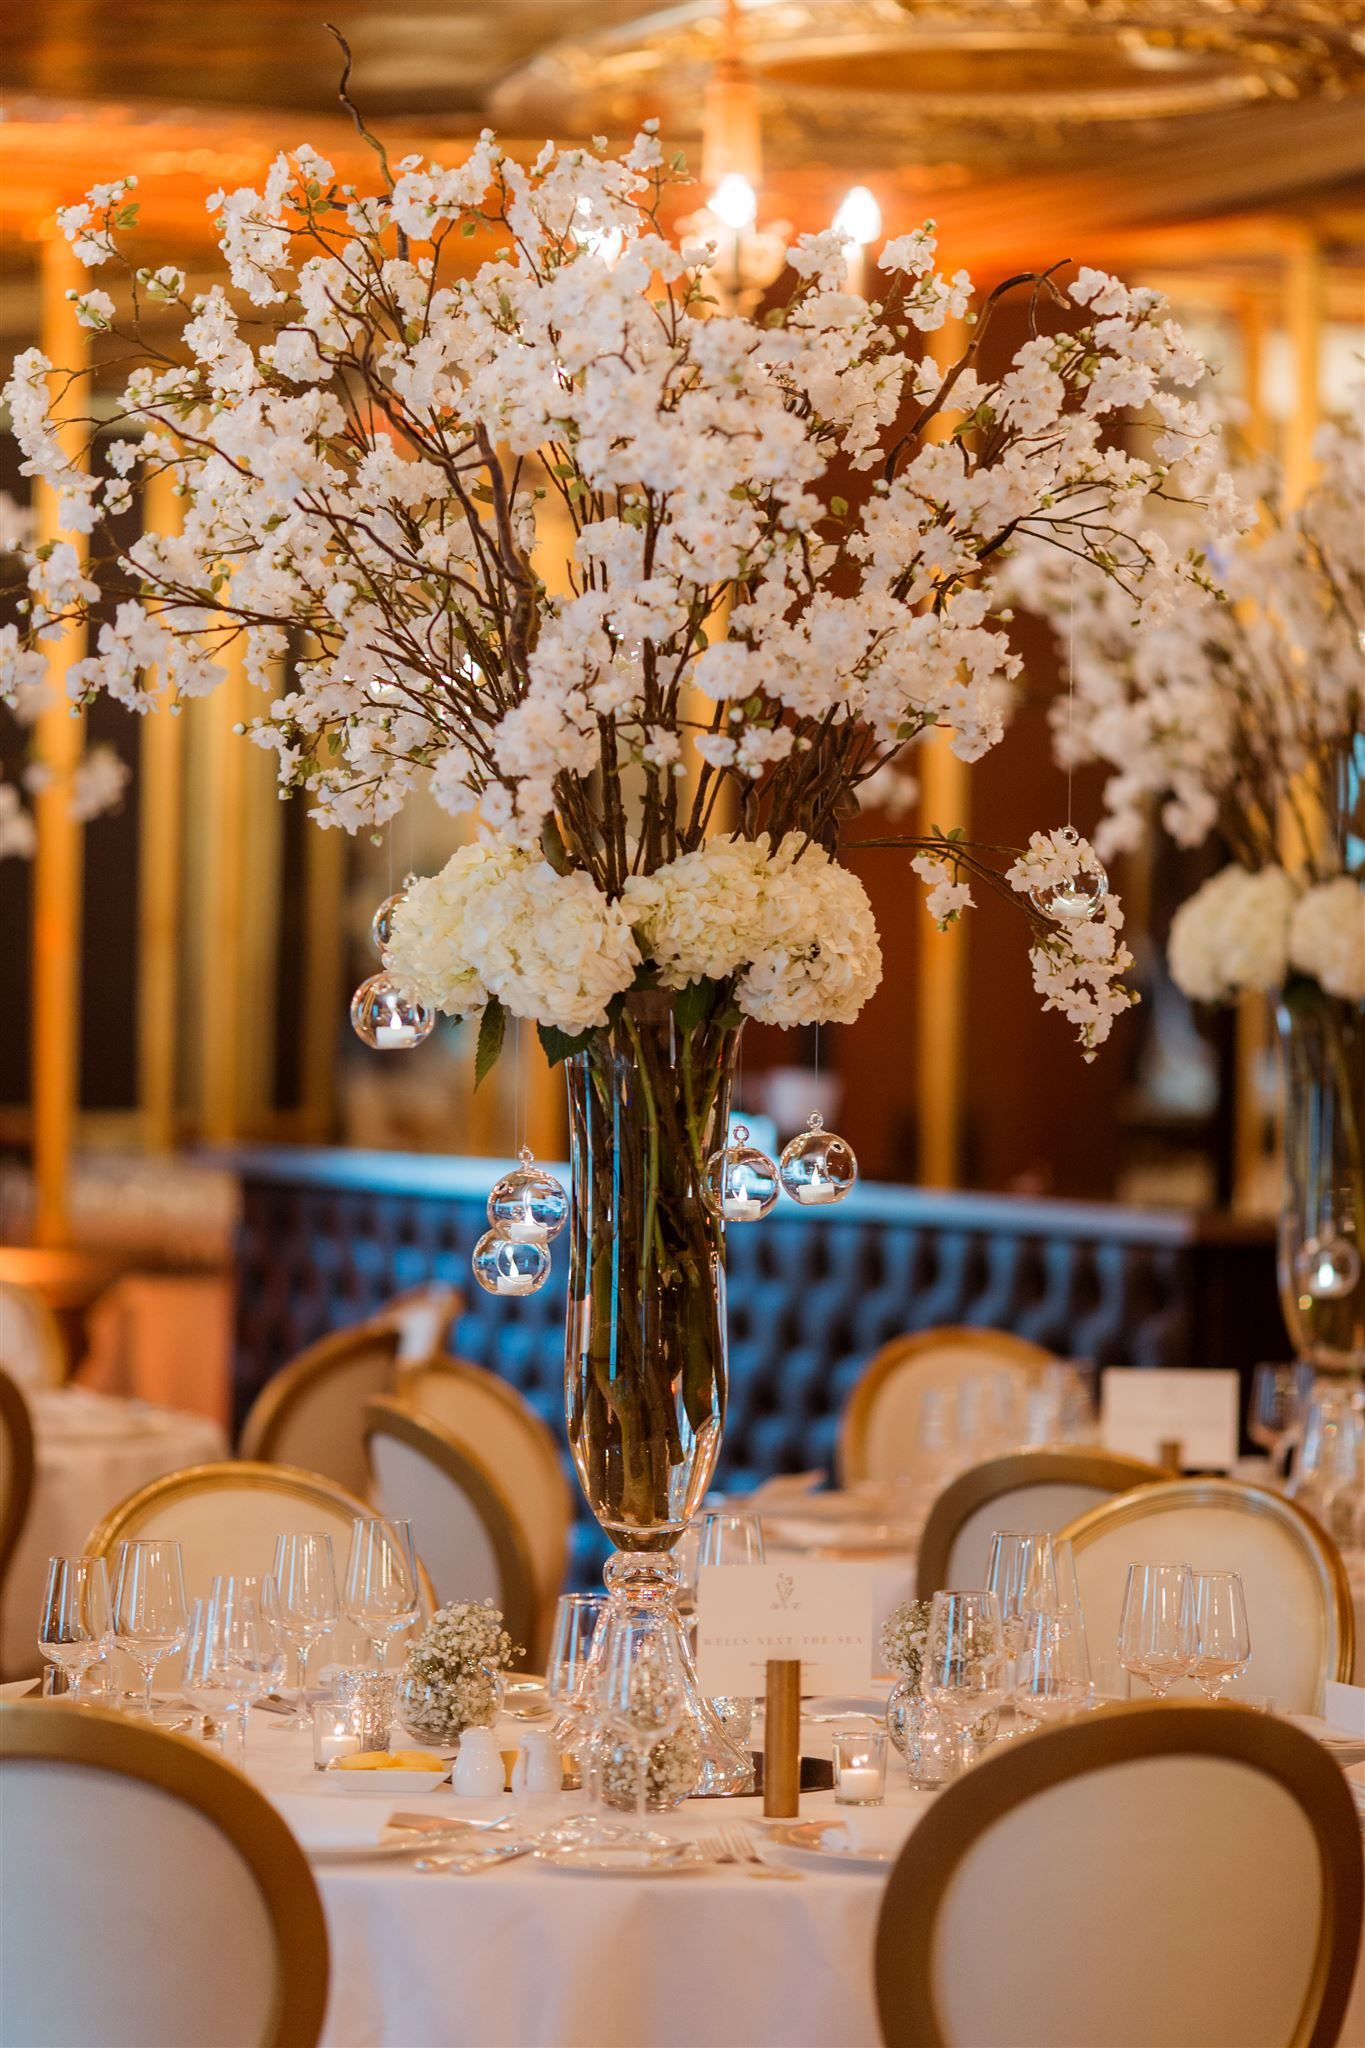 Blossom table centres by Rachel Morgan Wedding Flowers